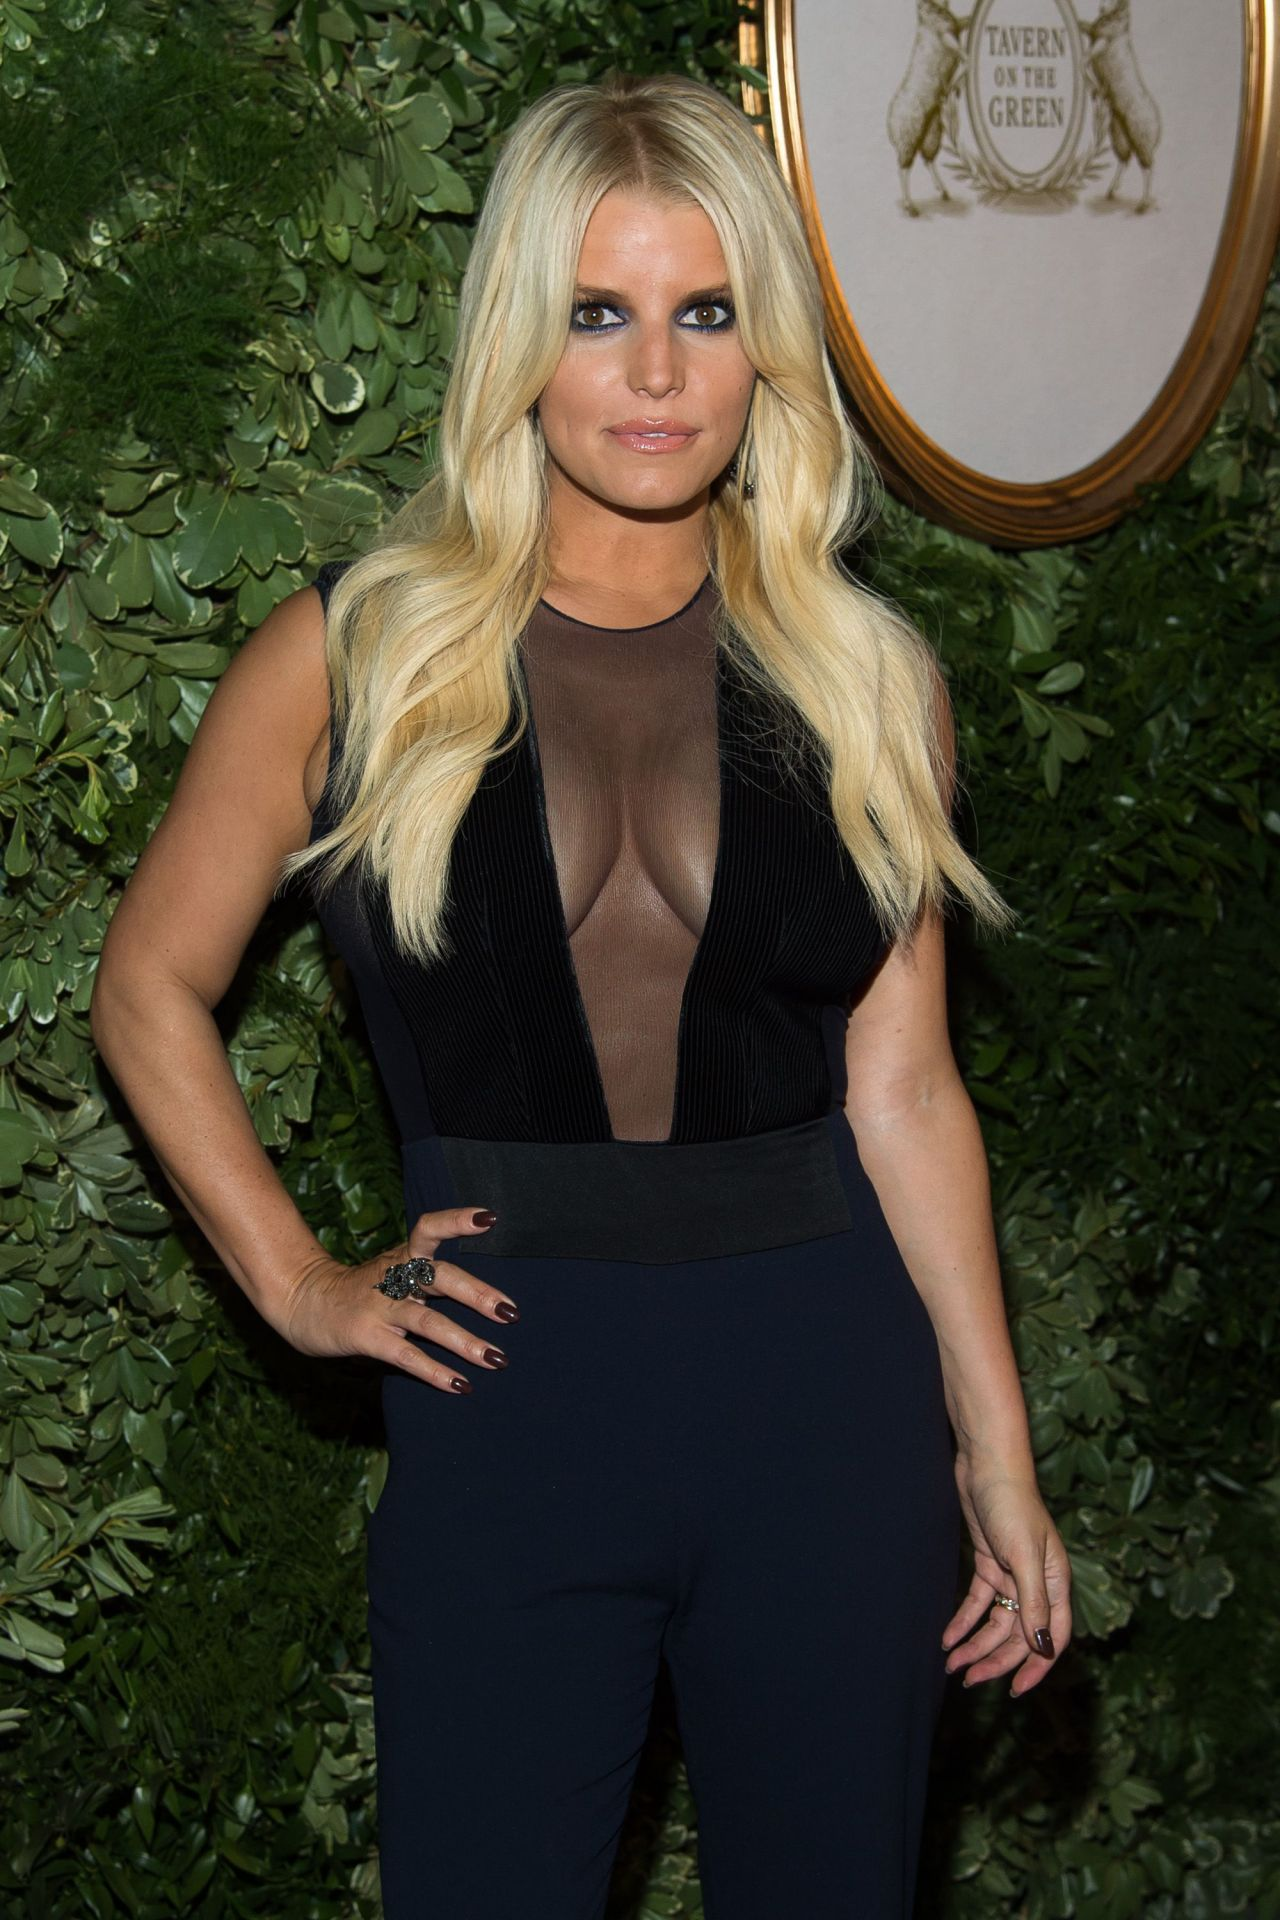 who is jessica simpson dating 2015 Keen to find out who is jessica simpson boyfriend get your facts straight - find out who is the latest jessica simpson boyfriend / lover.